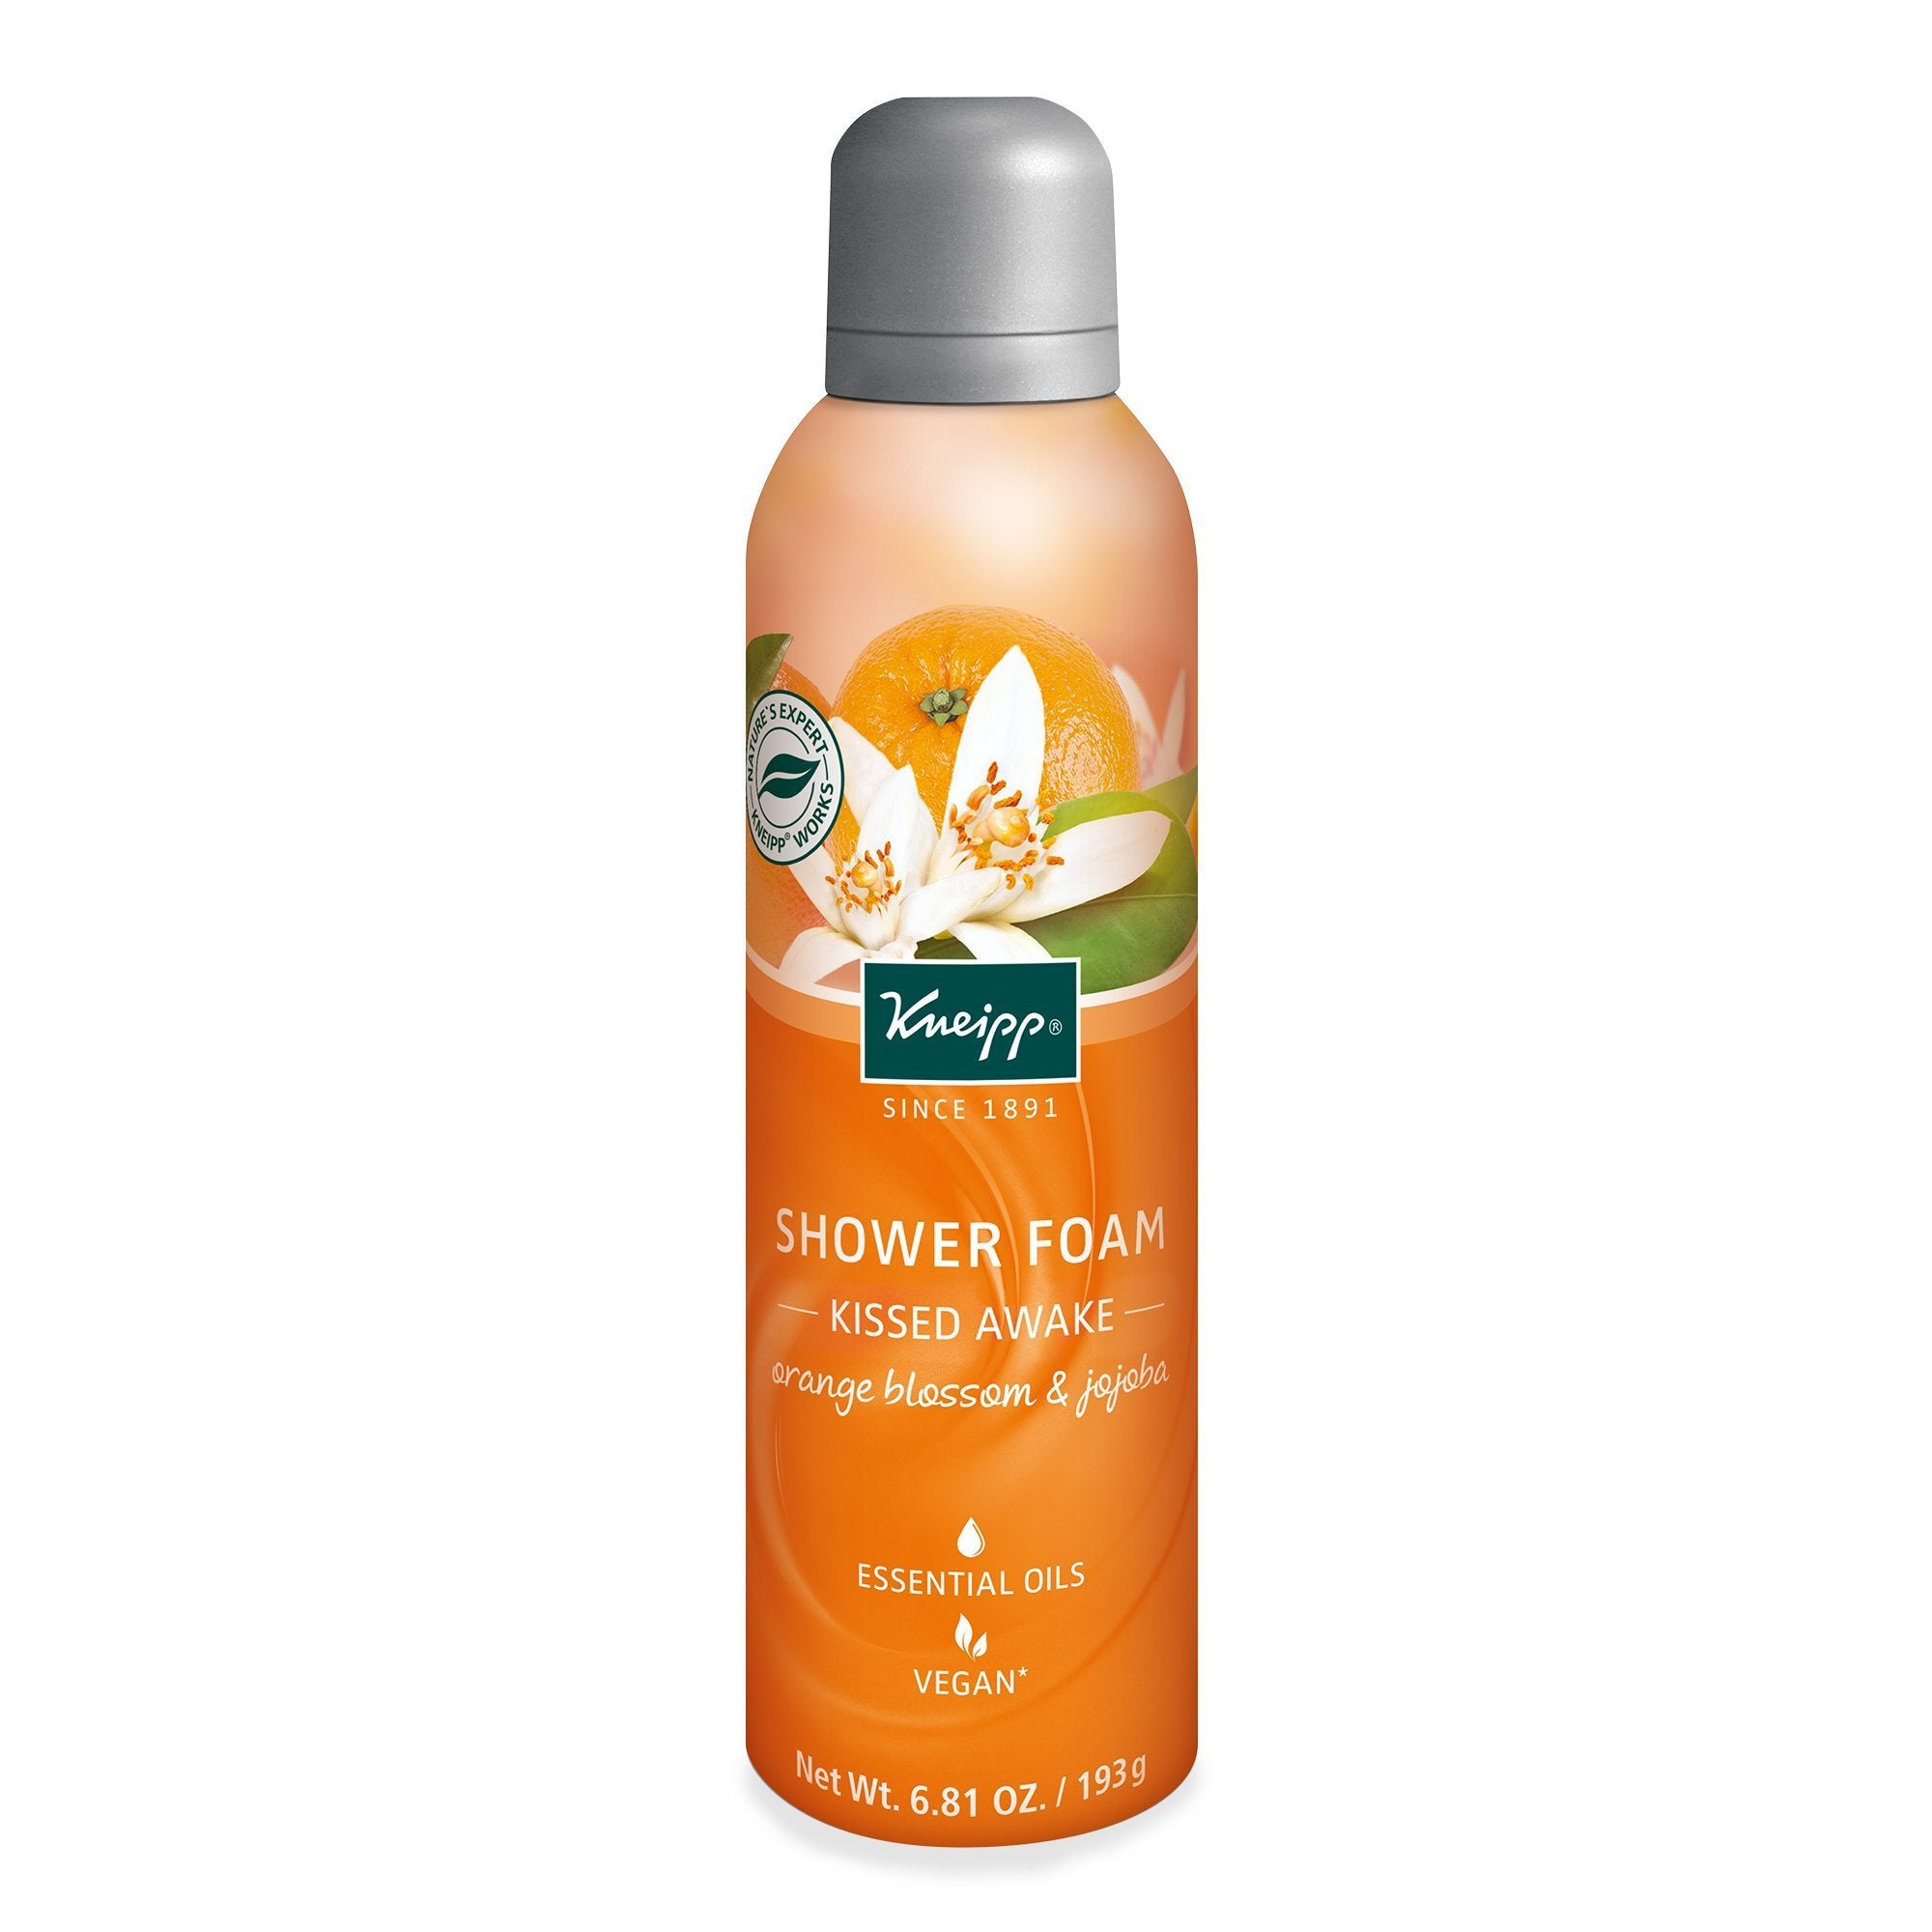 Kneipp Shower Foam Orange Blossom & Jojoba